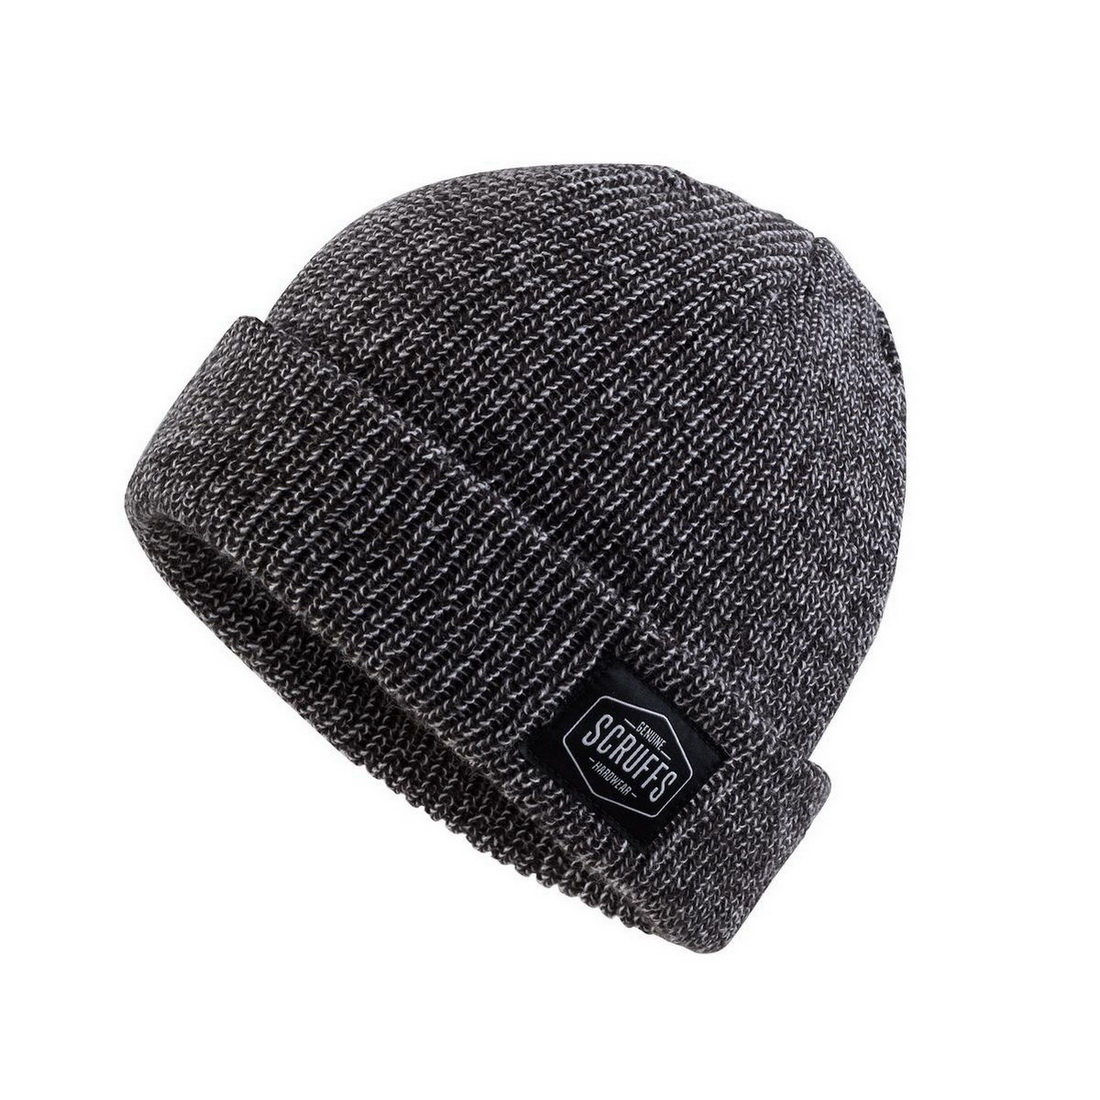 Vintage Microfleece Thermal Beanie Hat One Size Graphite T53062